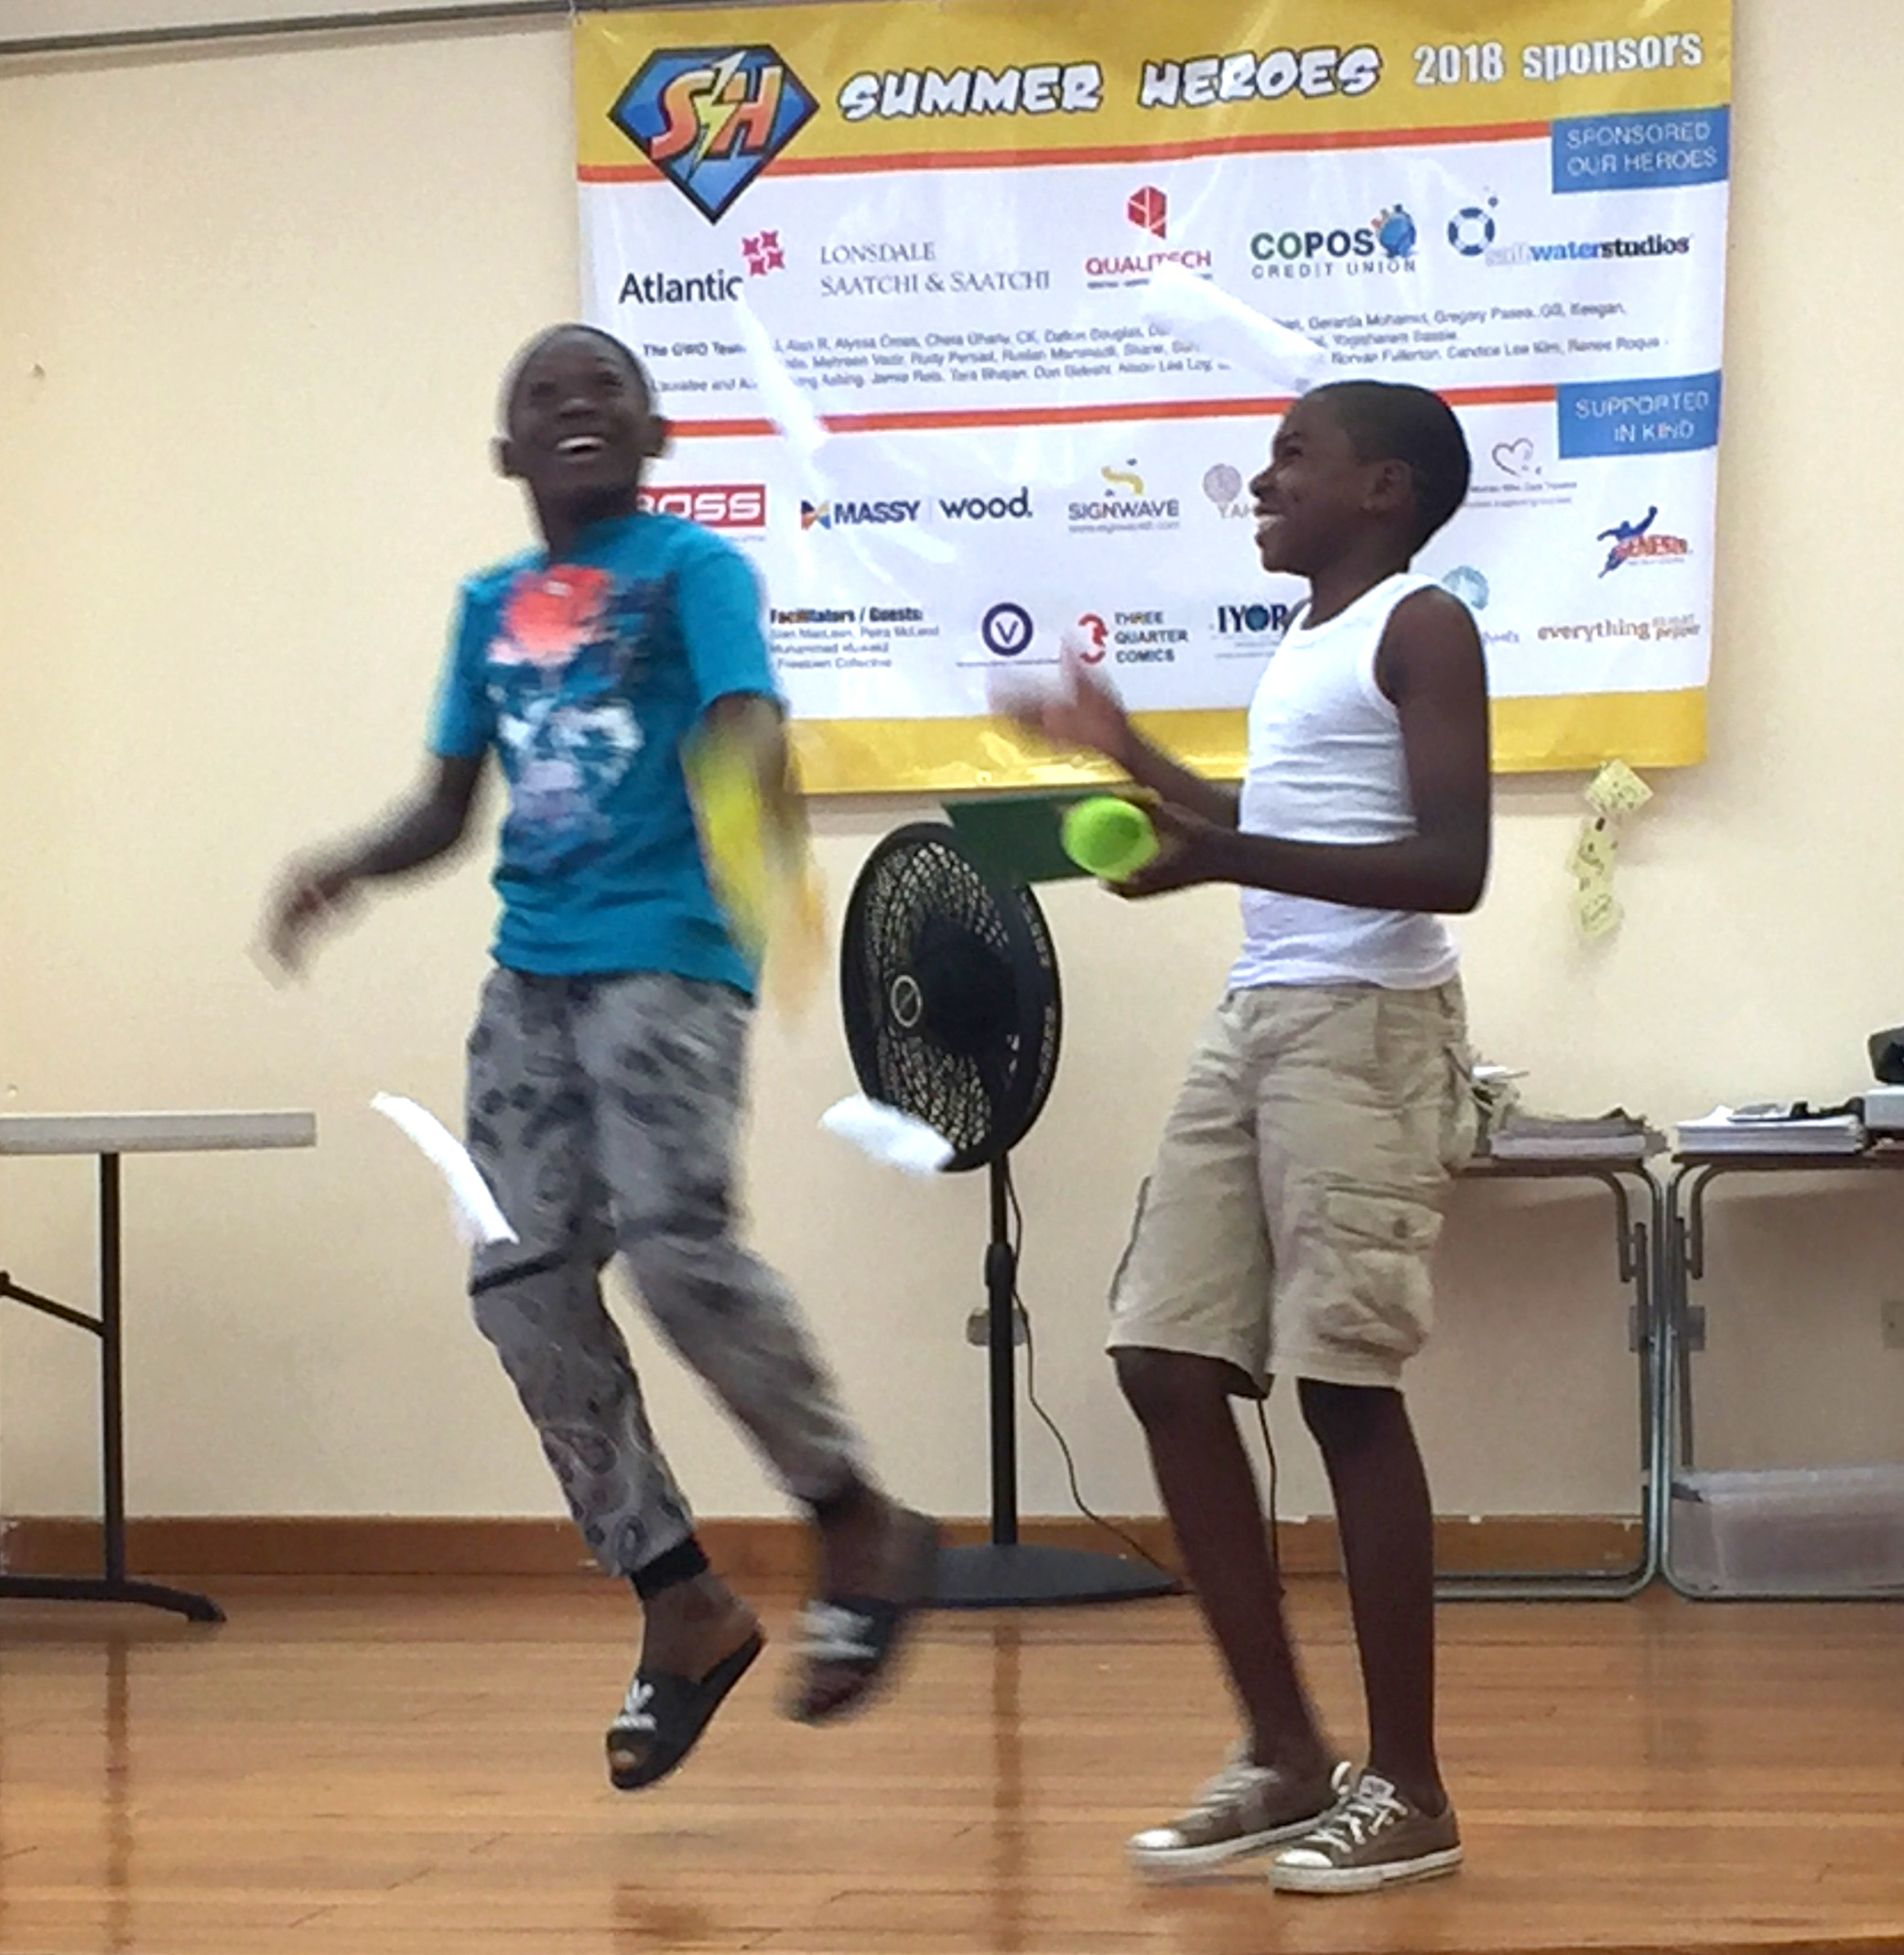 Heroes acting in a skit during a session by Giselle Mendez from The Volunteer Centre of Trinidad and Tobago